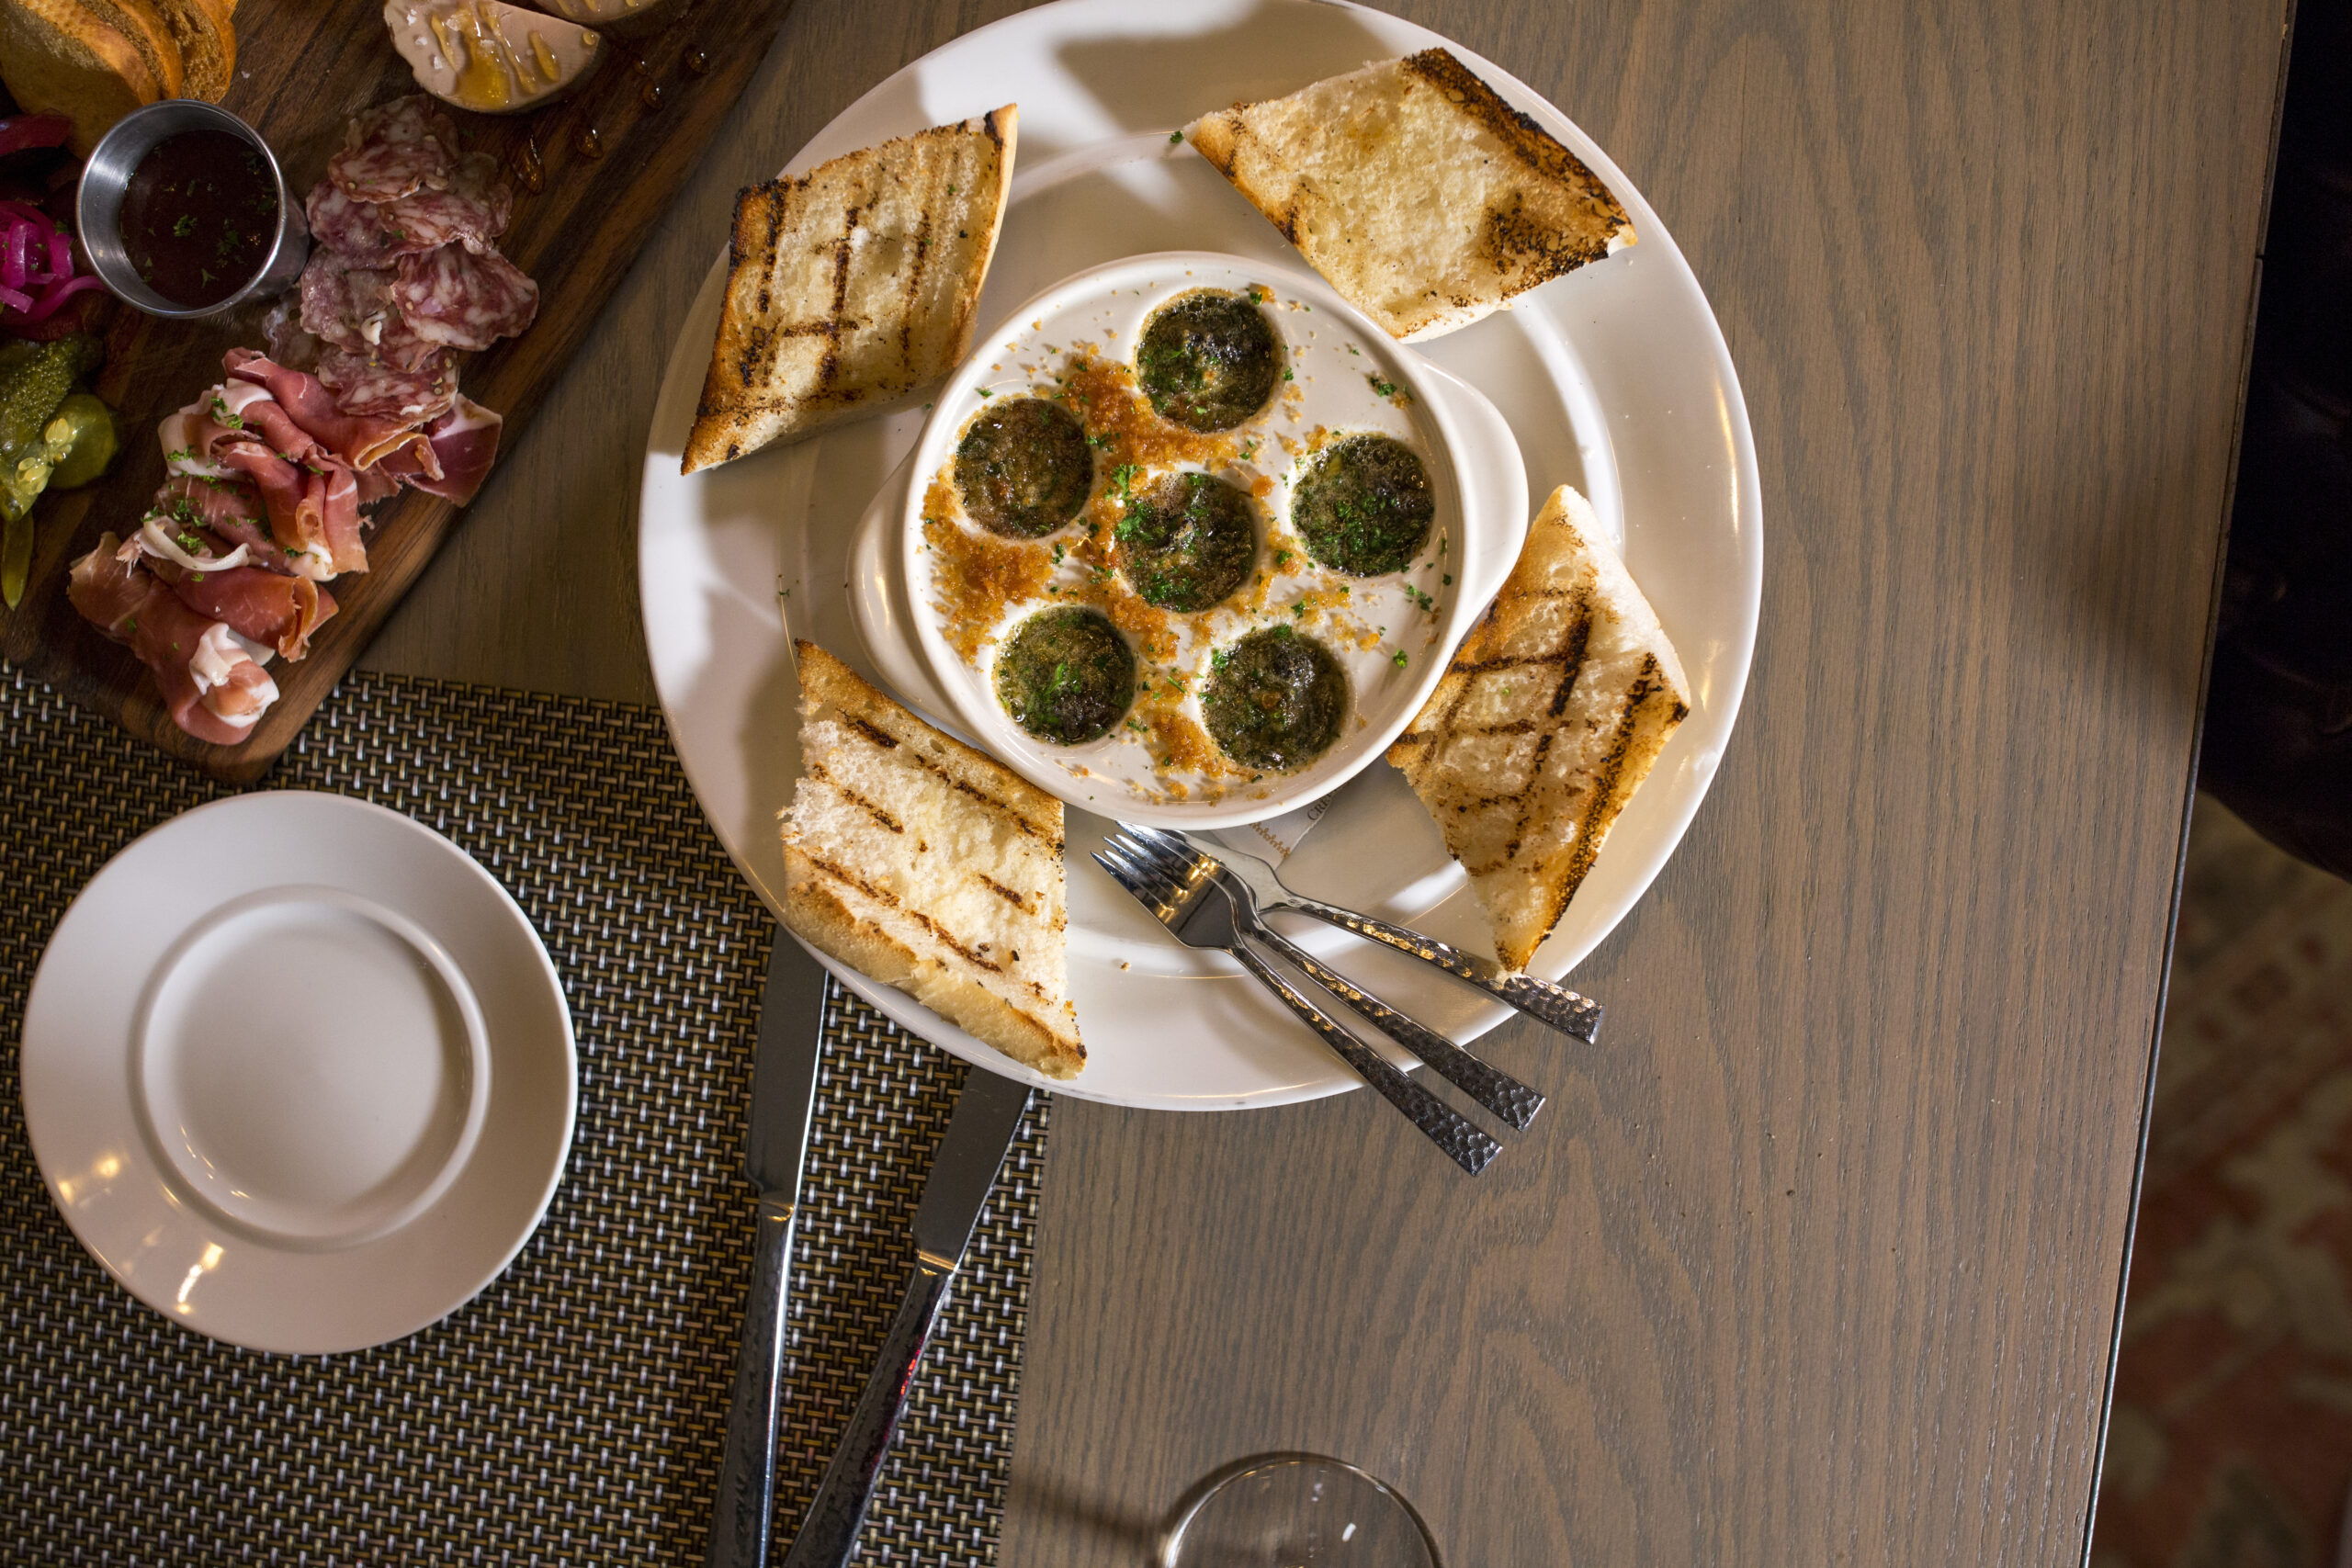 large white plate with bread and escargot on it with a platter of lunch meats next to it